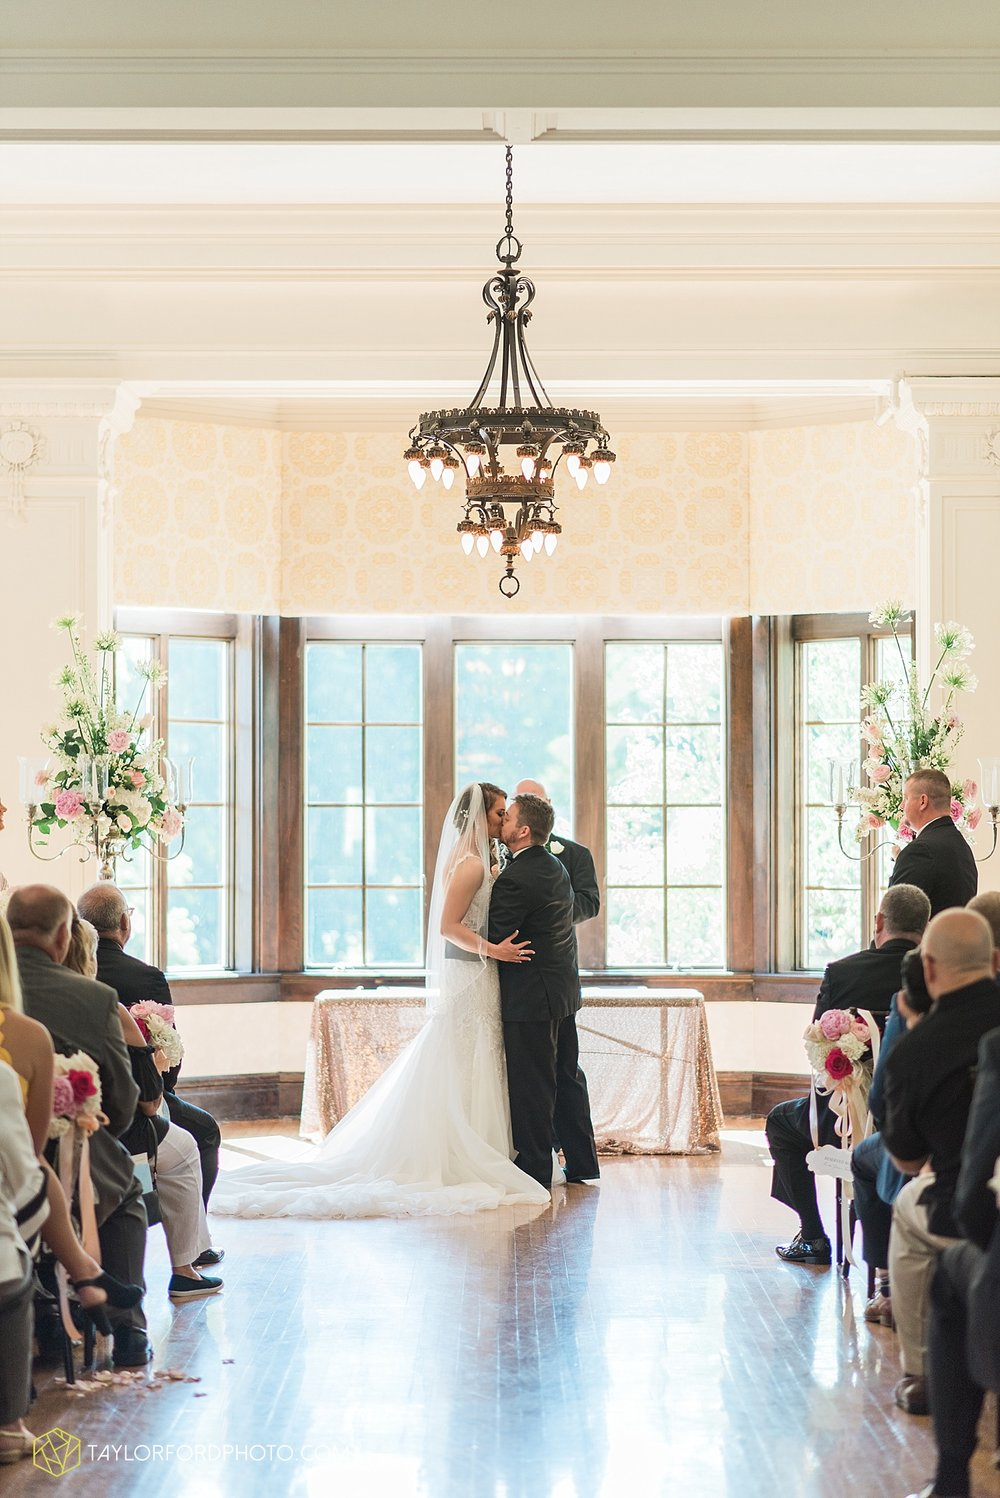 terre-haute-indiana-wedding-photographer-taylor-ford-photography-saint-marys-of-the-woods-college-weddings_2911.jpg